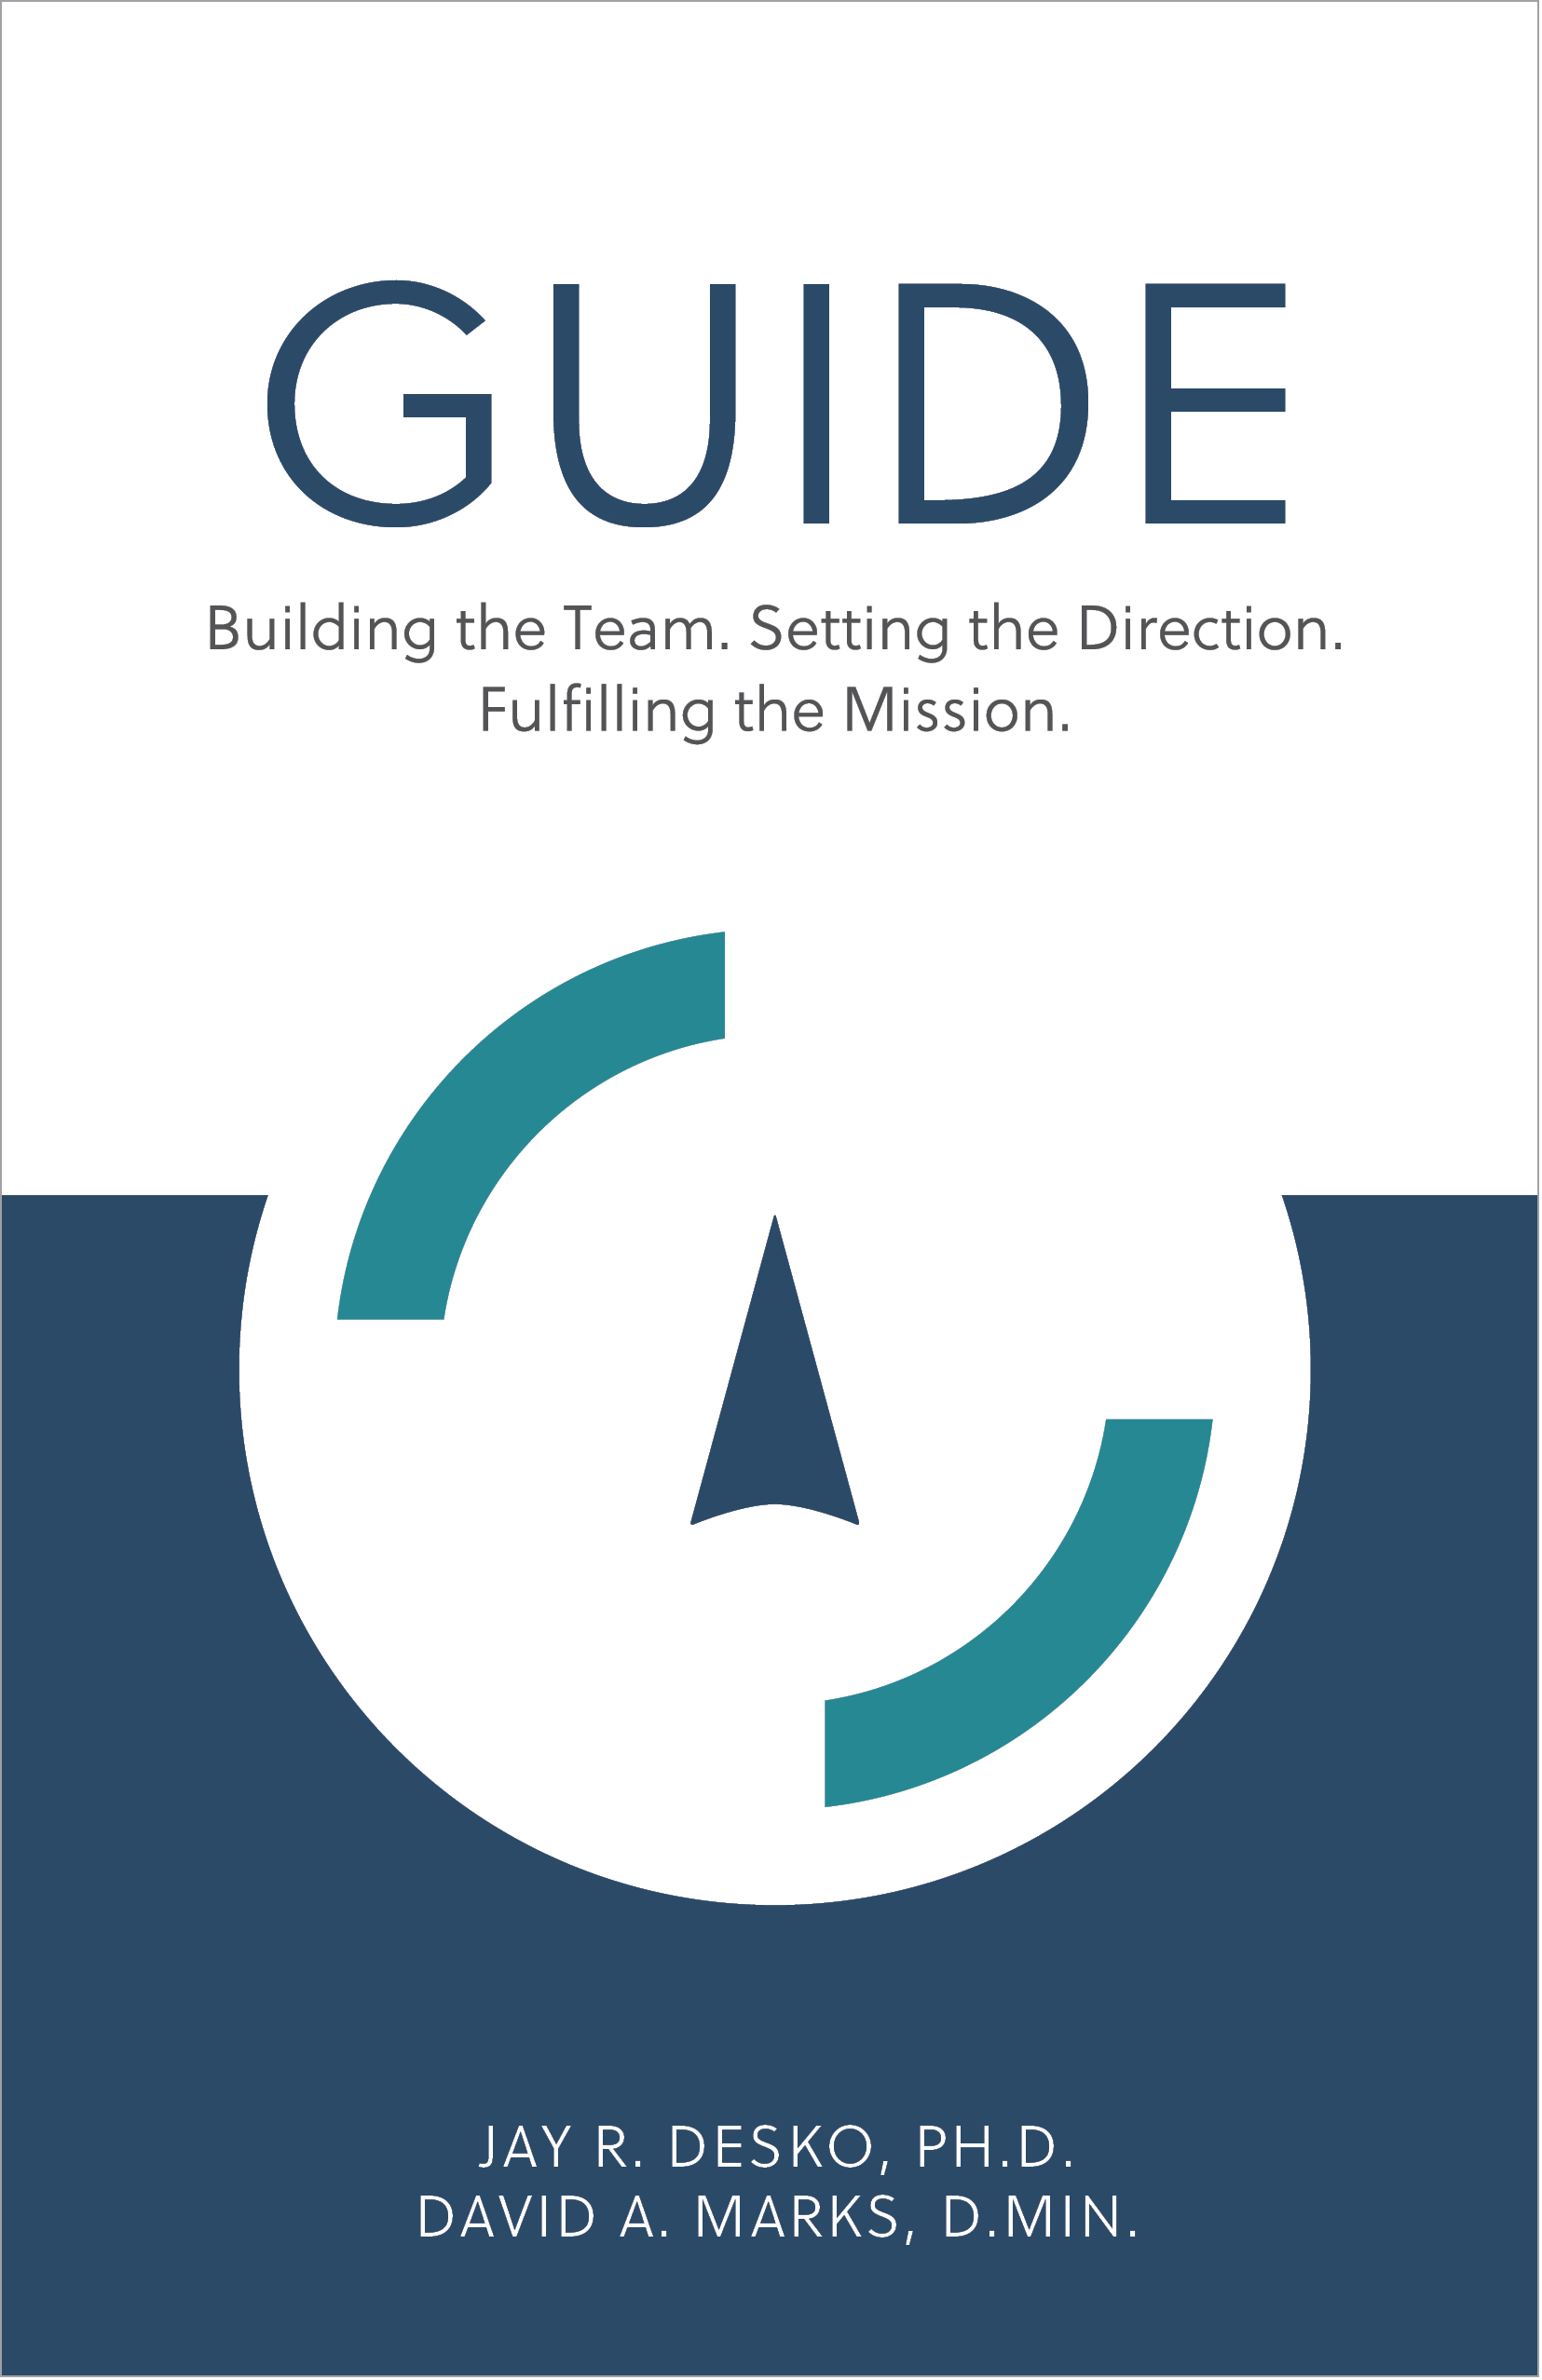 GUIDE – Building the Team. Setting the Direction. Fulfilling the Mission -  By Jay R. Desko, Ph.D. & David A. Marks, D.Min. - ISBN: 978-1-5323-6399-3 - The Center Consulting - Organizational and leadership consulting and coaching for businesses, nonprofits, and churches